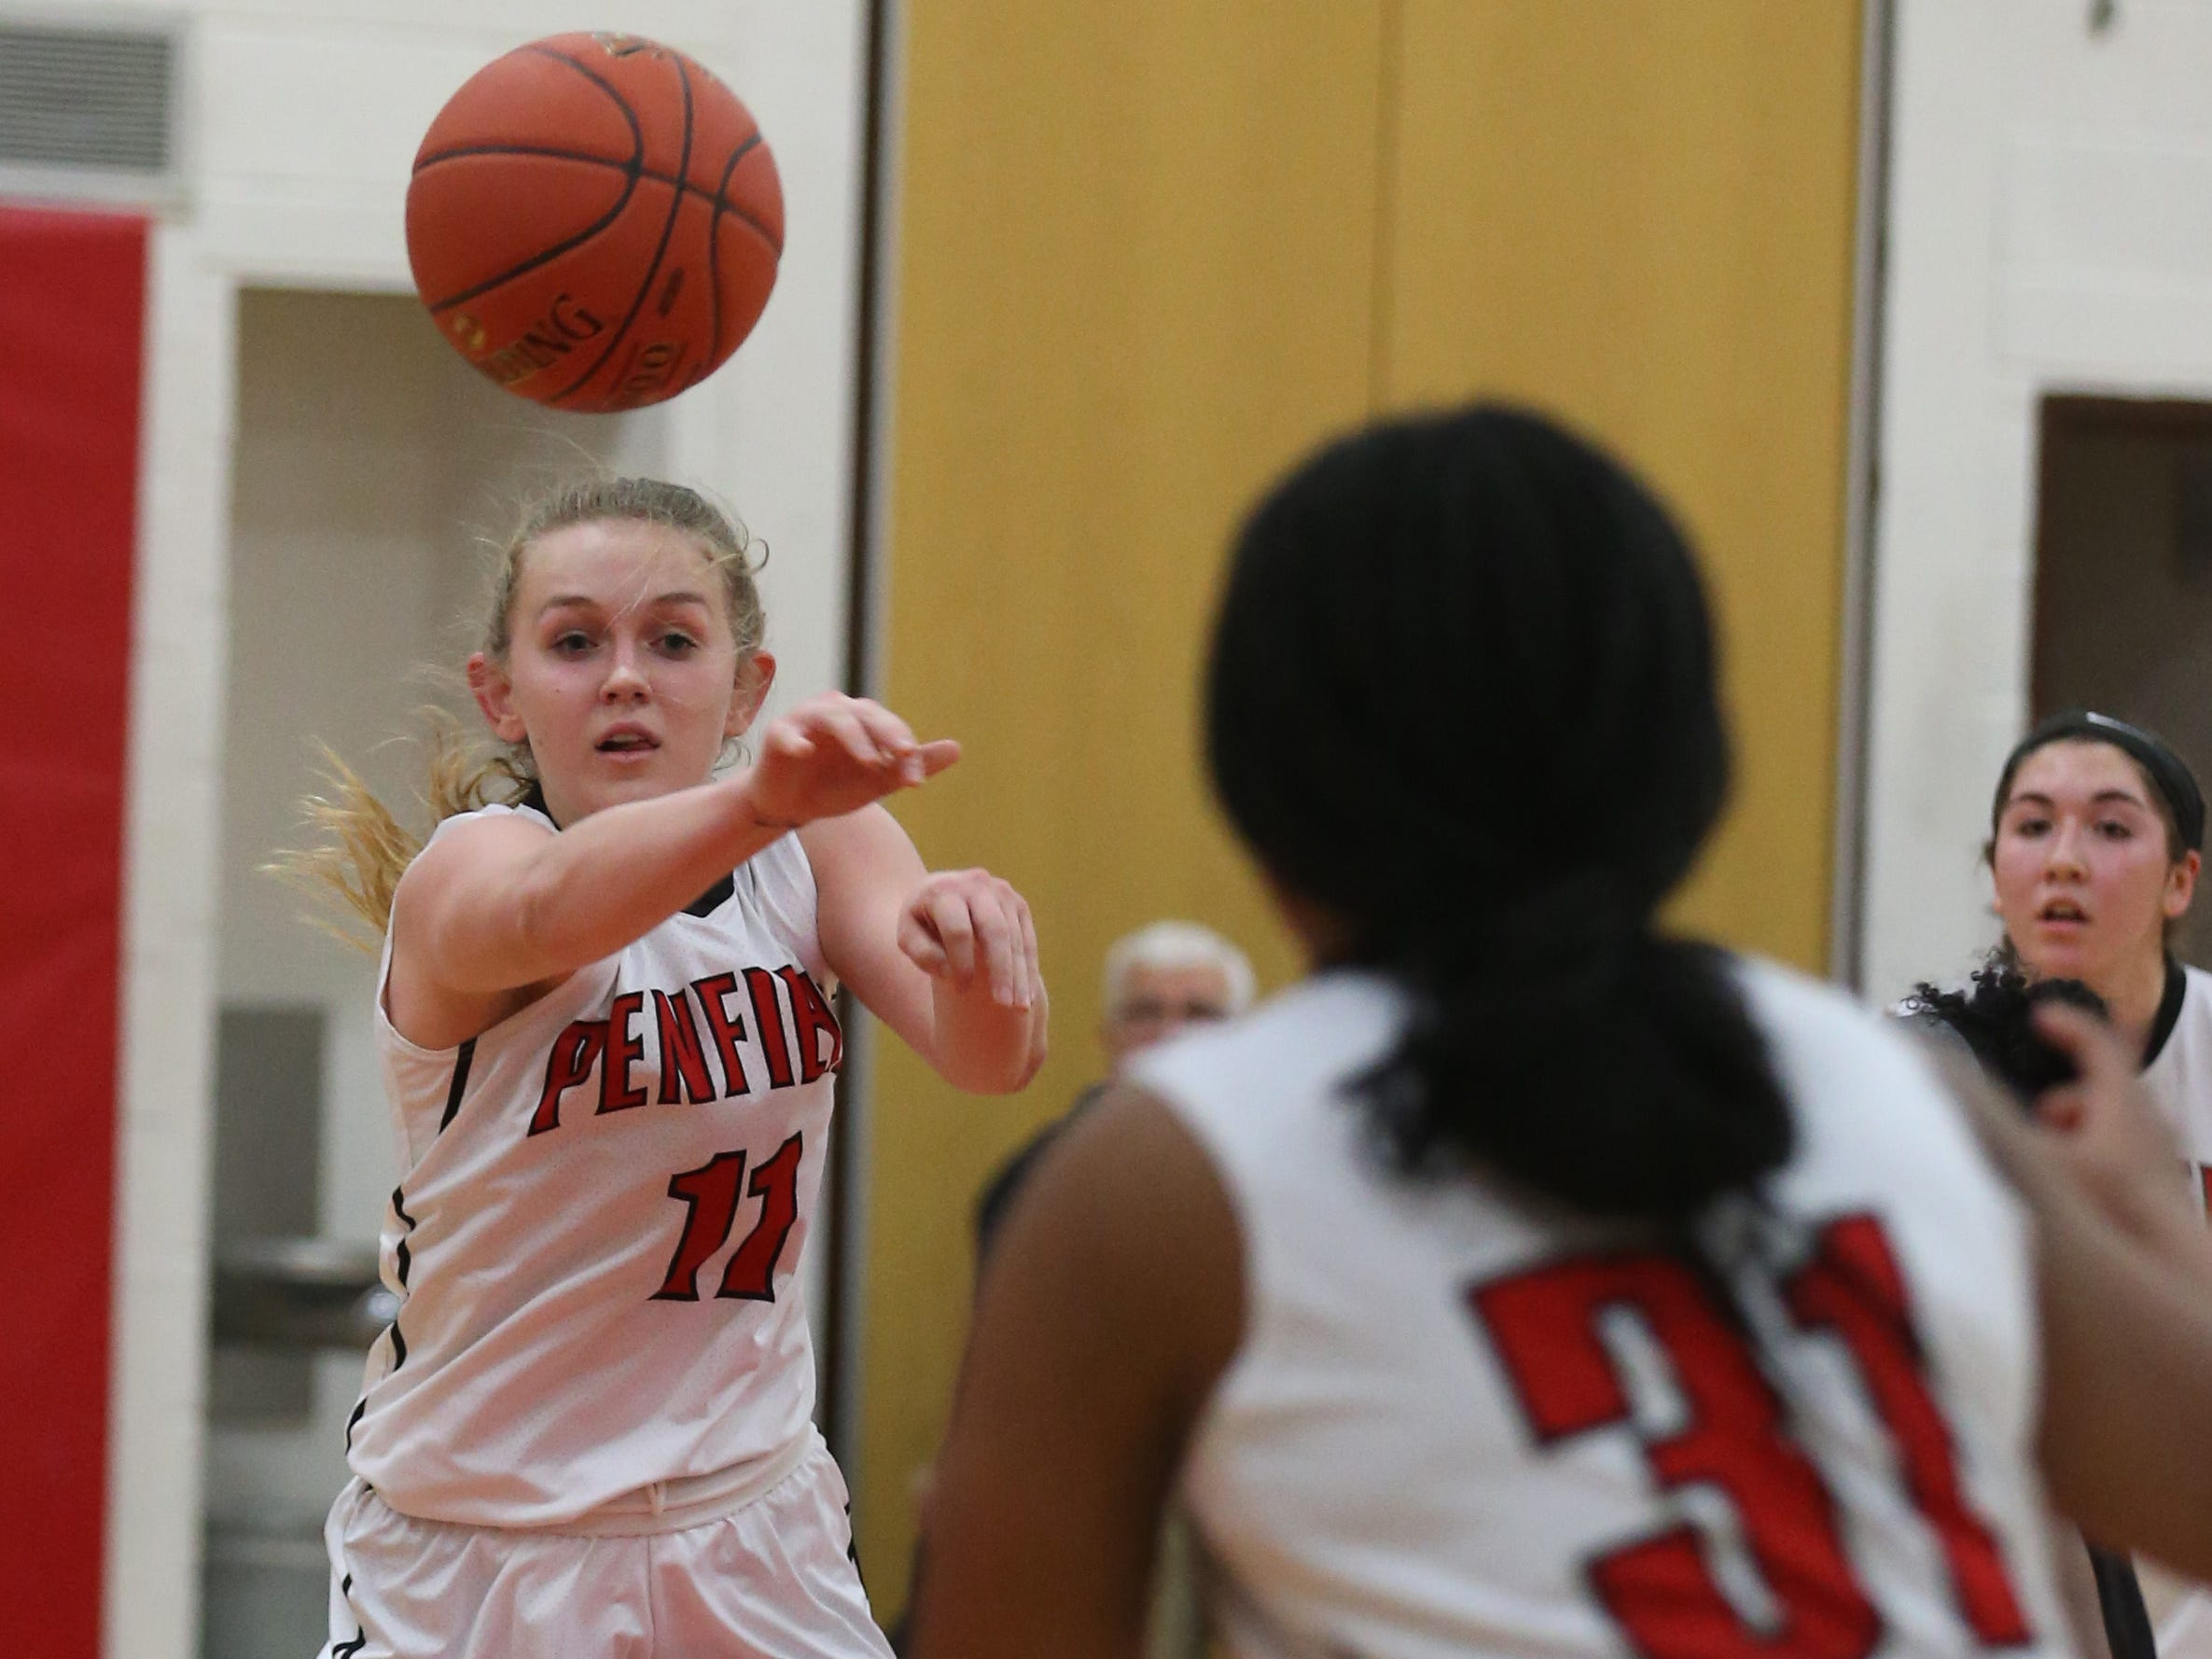 Penfield's Nina Nesselbush, left, zips a pass to teammate Nyara Simmons in the low post.